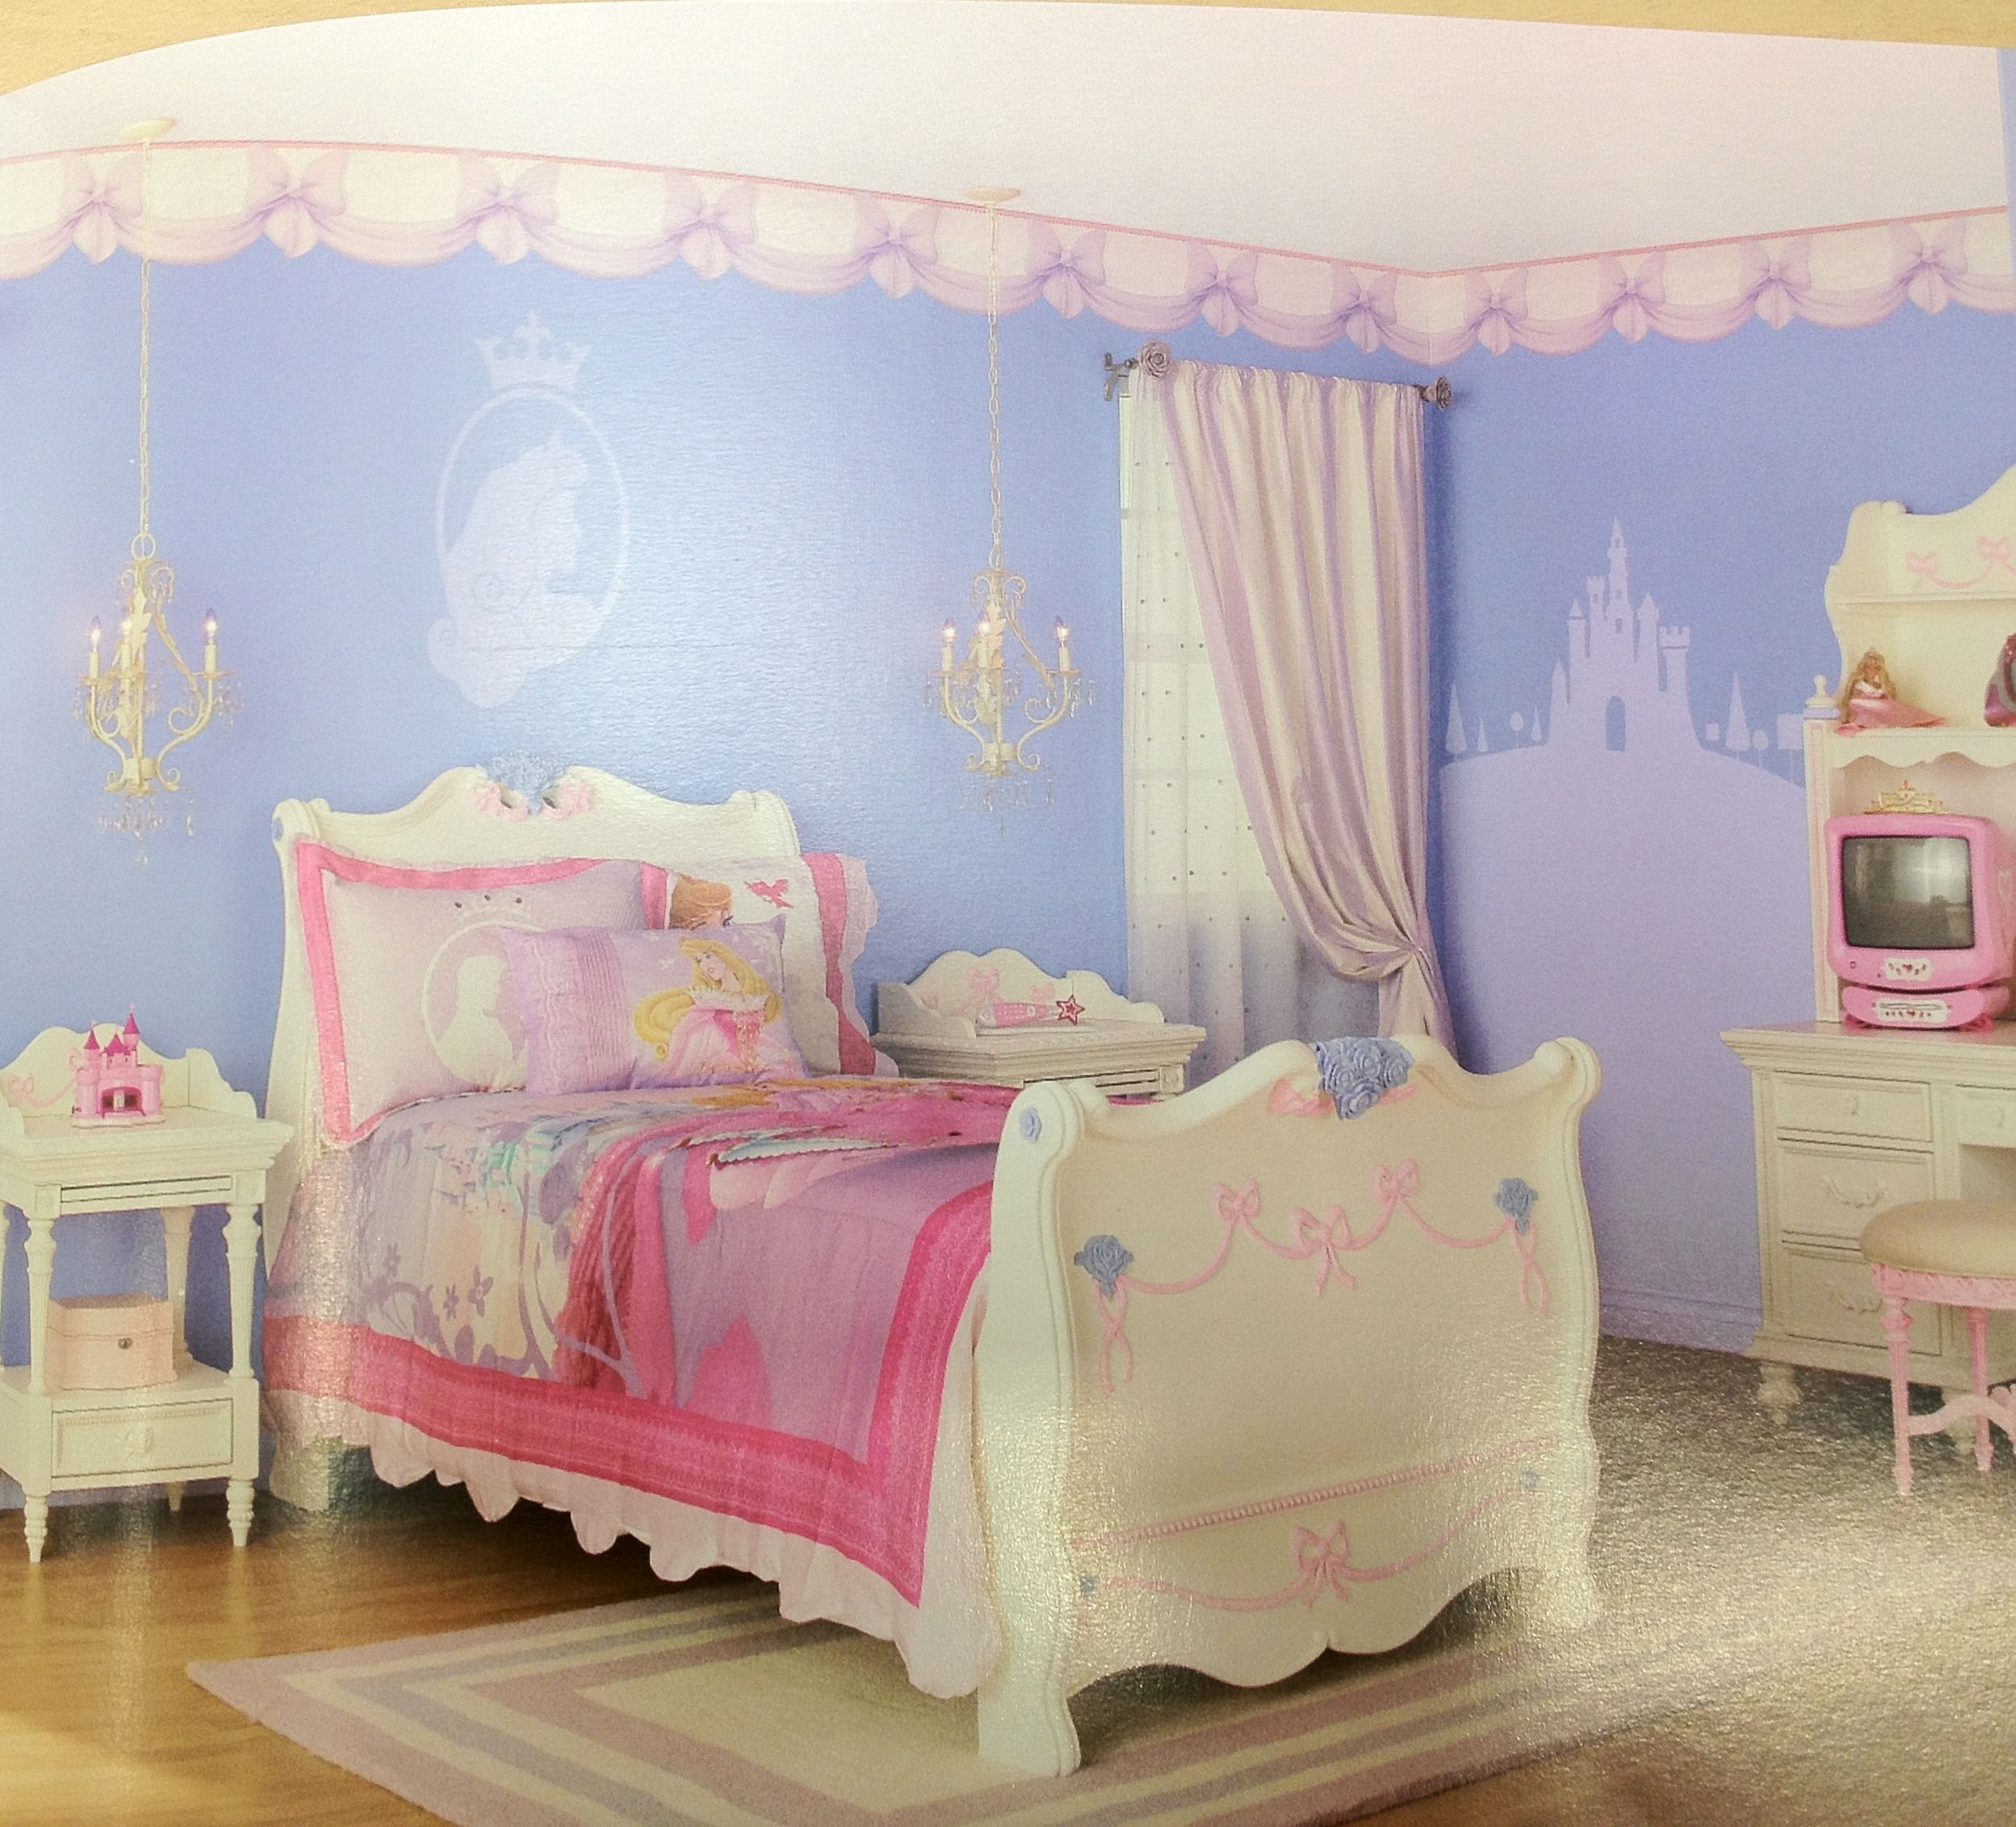 Little Girl Room Ideas | Decorating a Disney Princess Themed ...